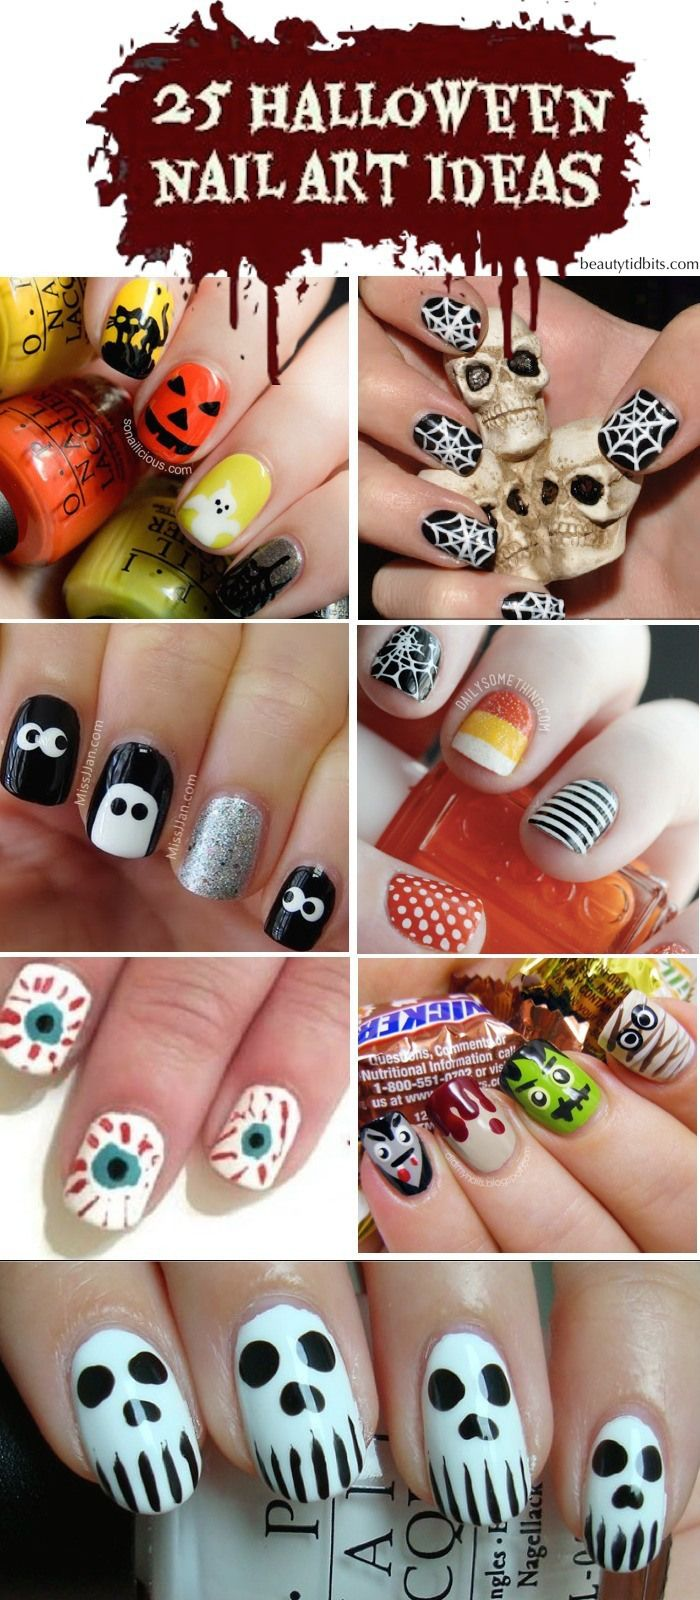 25 Spooky & Simple Halloween Nail Art Ideas | Halloween ...